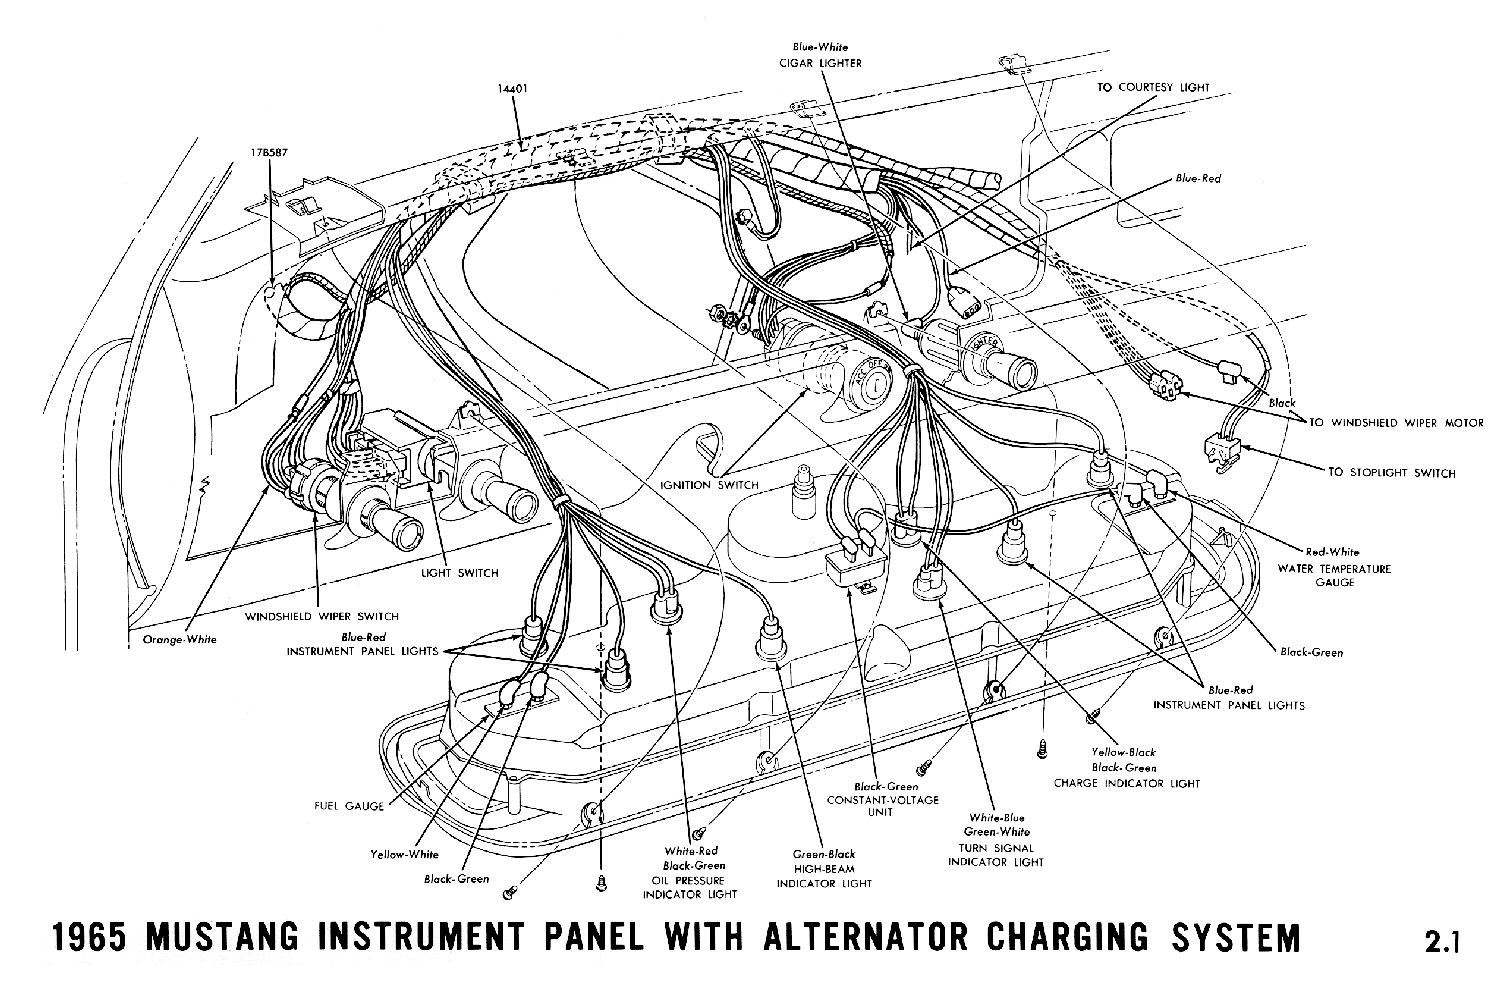 Ammeter Wiring Diagram Alternator Lights Electronicswiring Gmc Typhoon 1965a 1965 Mustang Diagrams